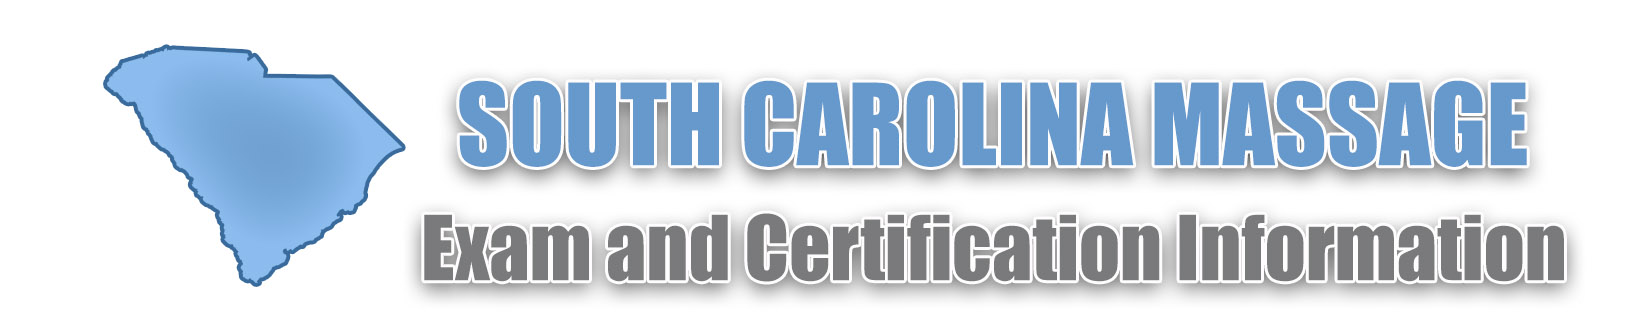 South Carolina Massage Licensure and Board Certification